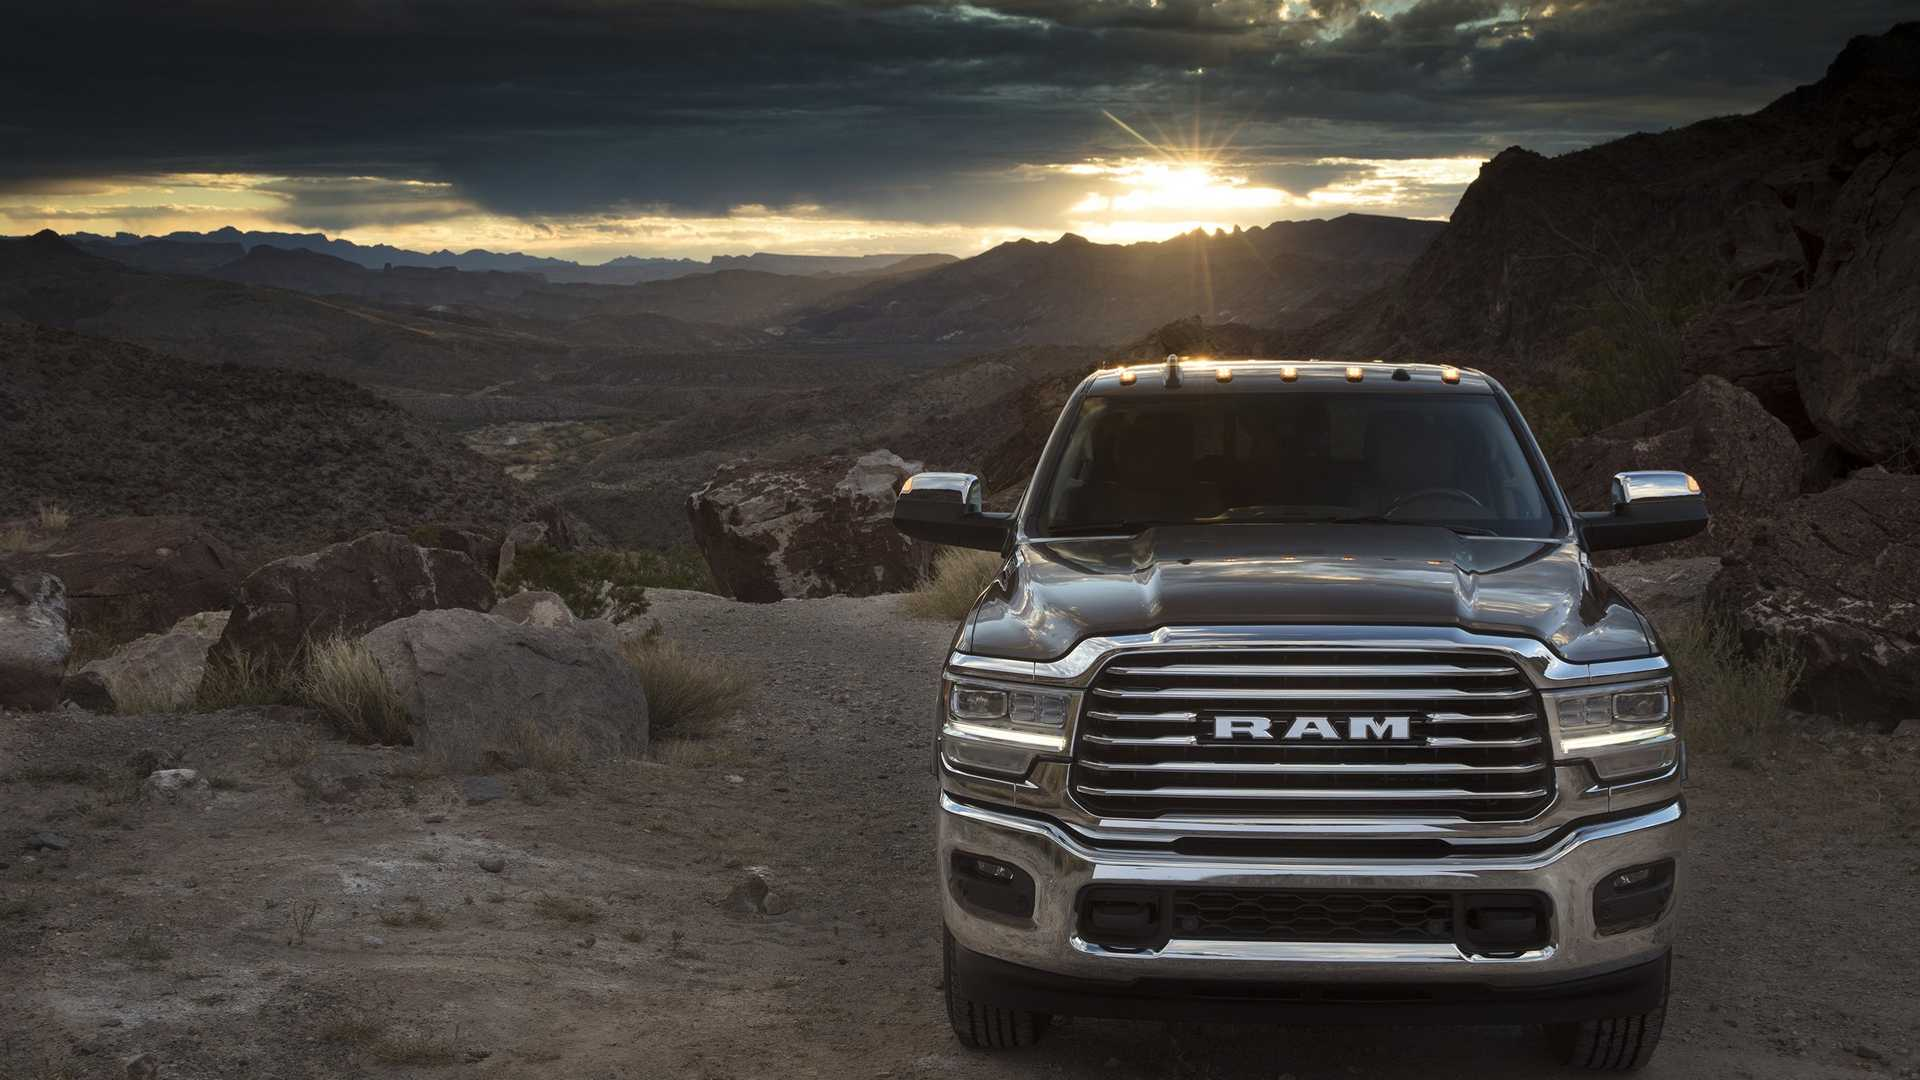 2019 Ram Hd Sport Package Showcased At Boston Auto Show